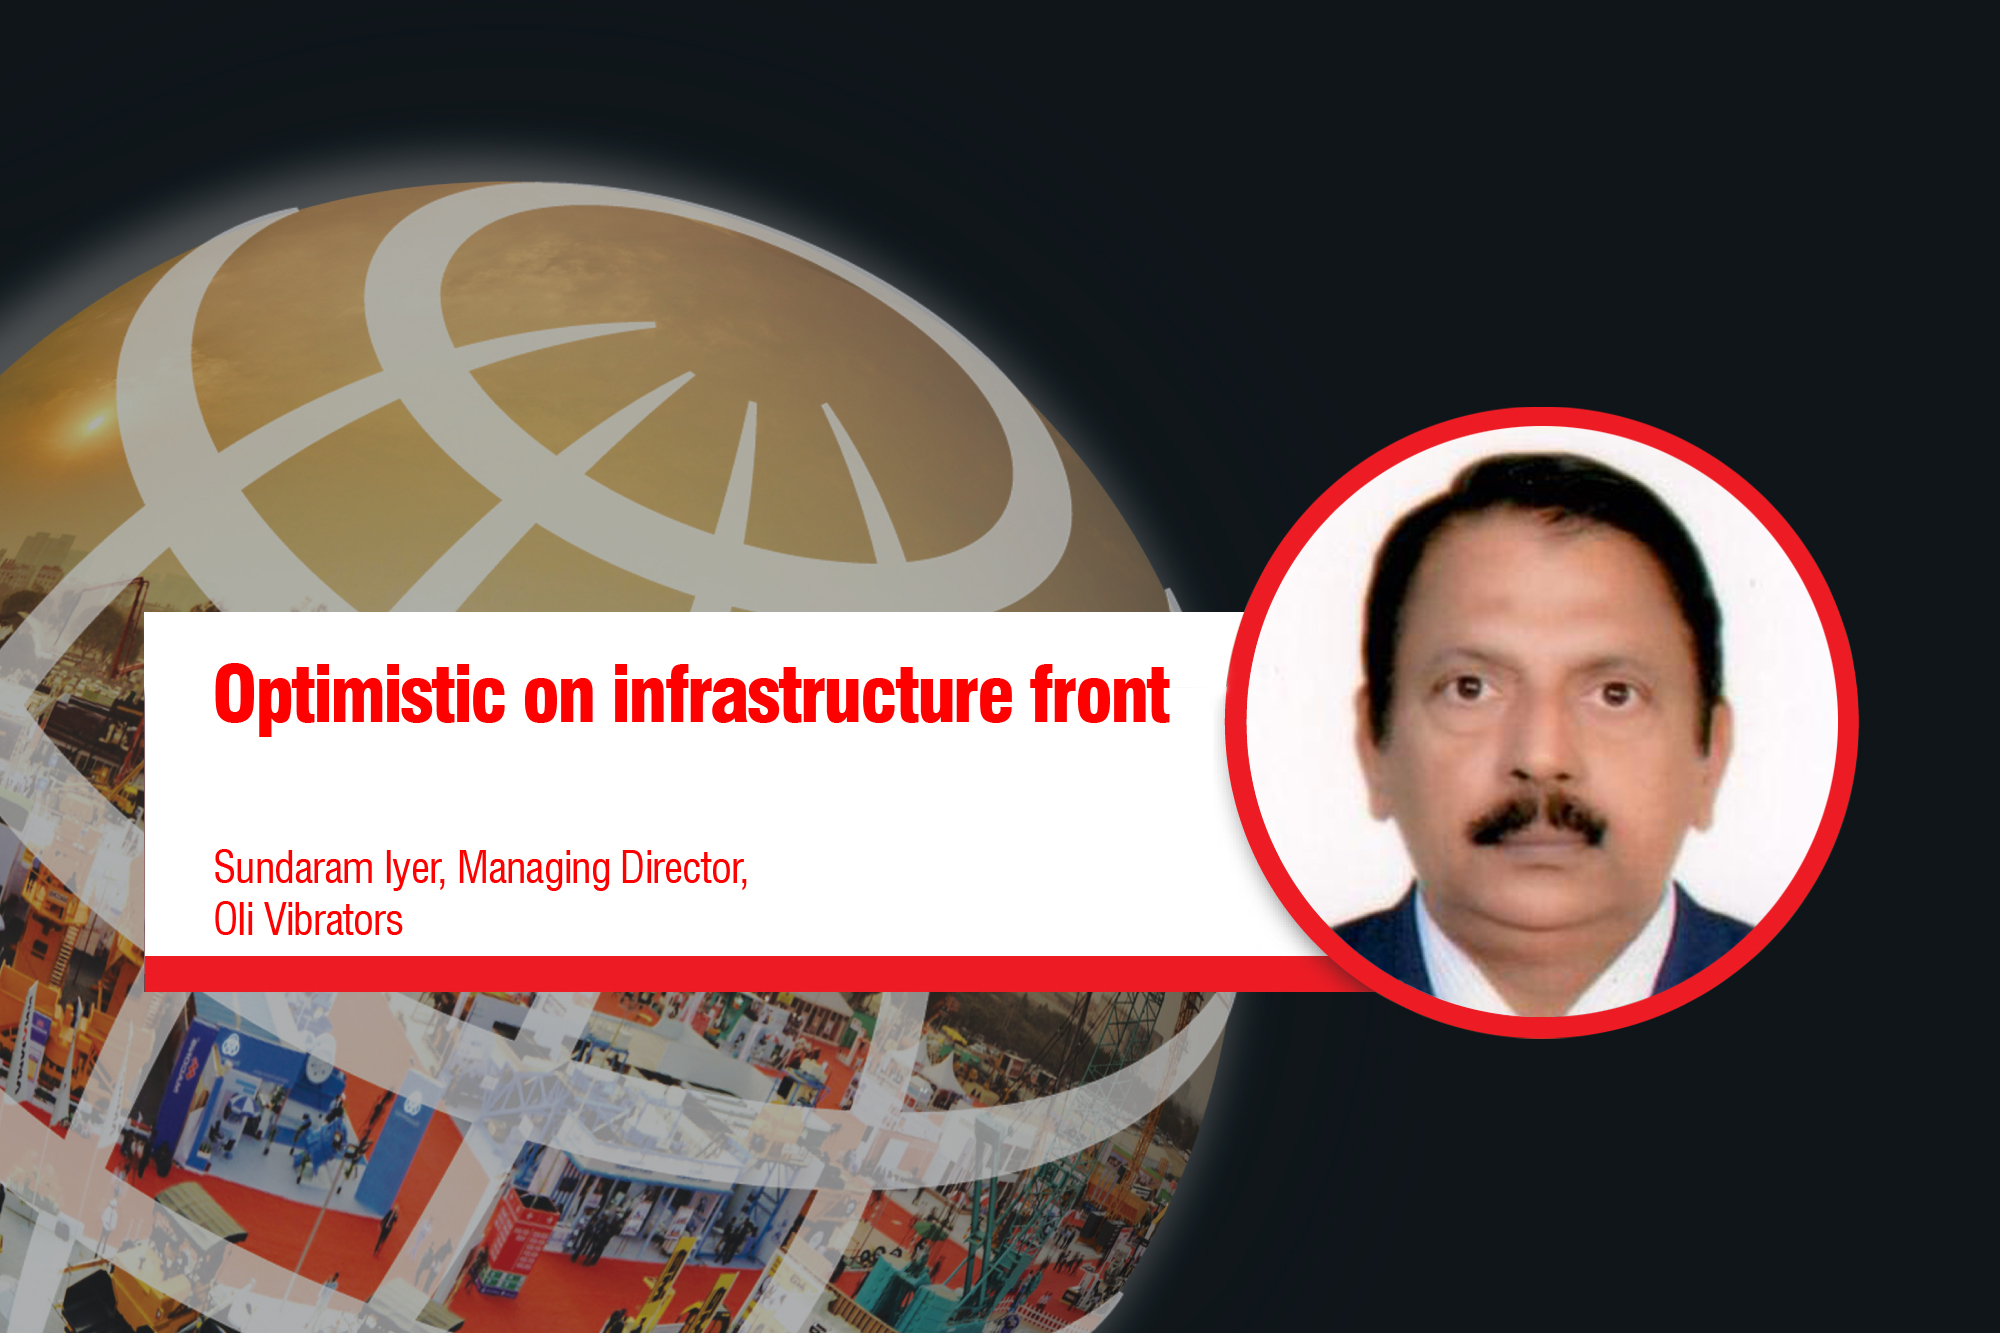 Optimistic on infrastructure front